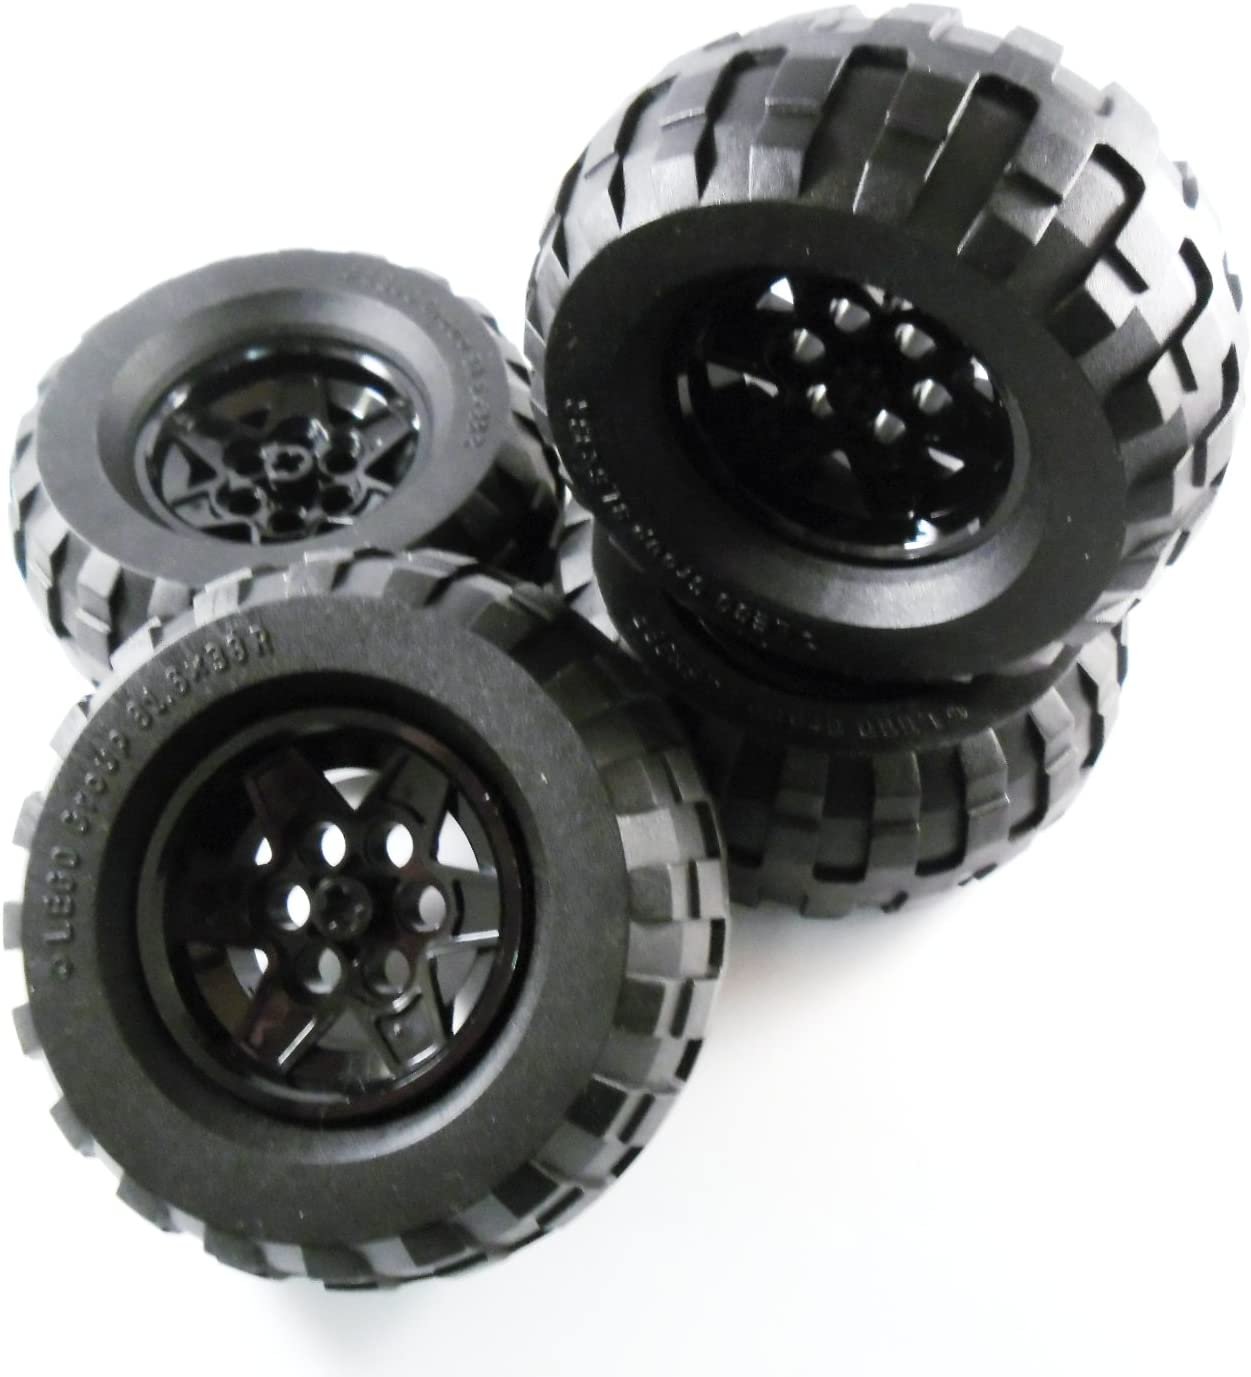 LEGO x TECHNIC Tire 81.6 x 38R with Black Wheel